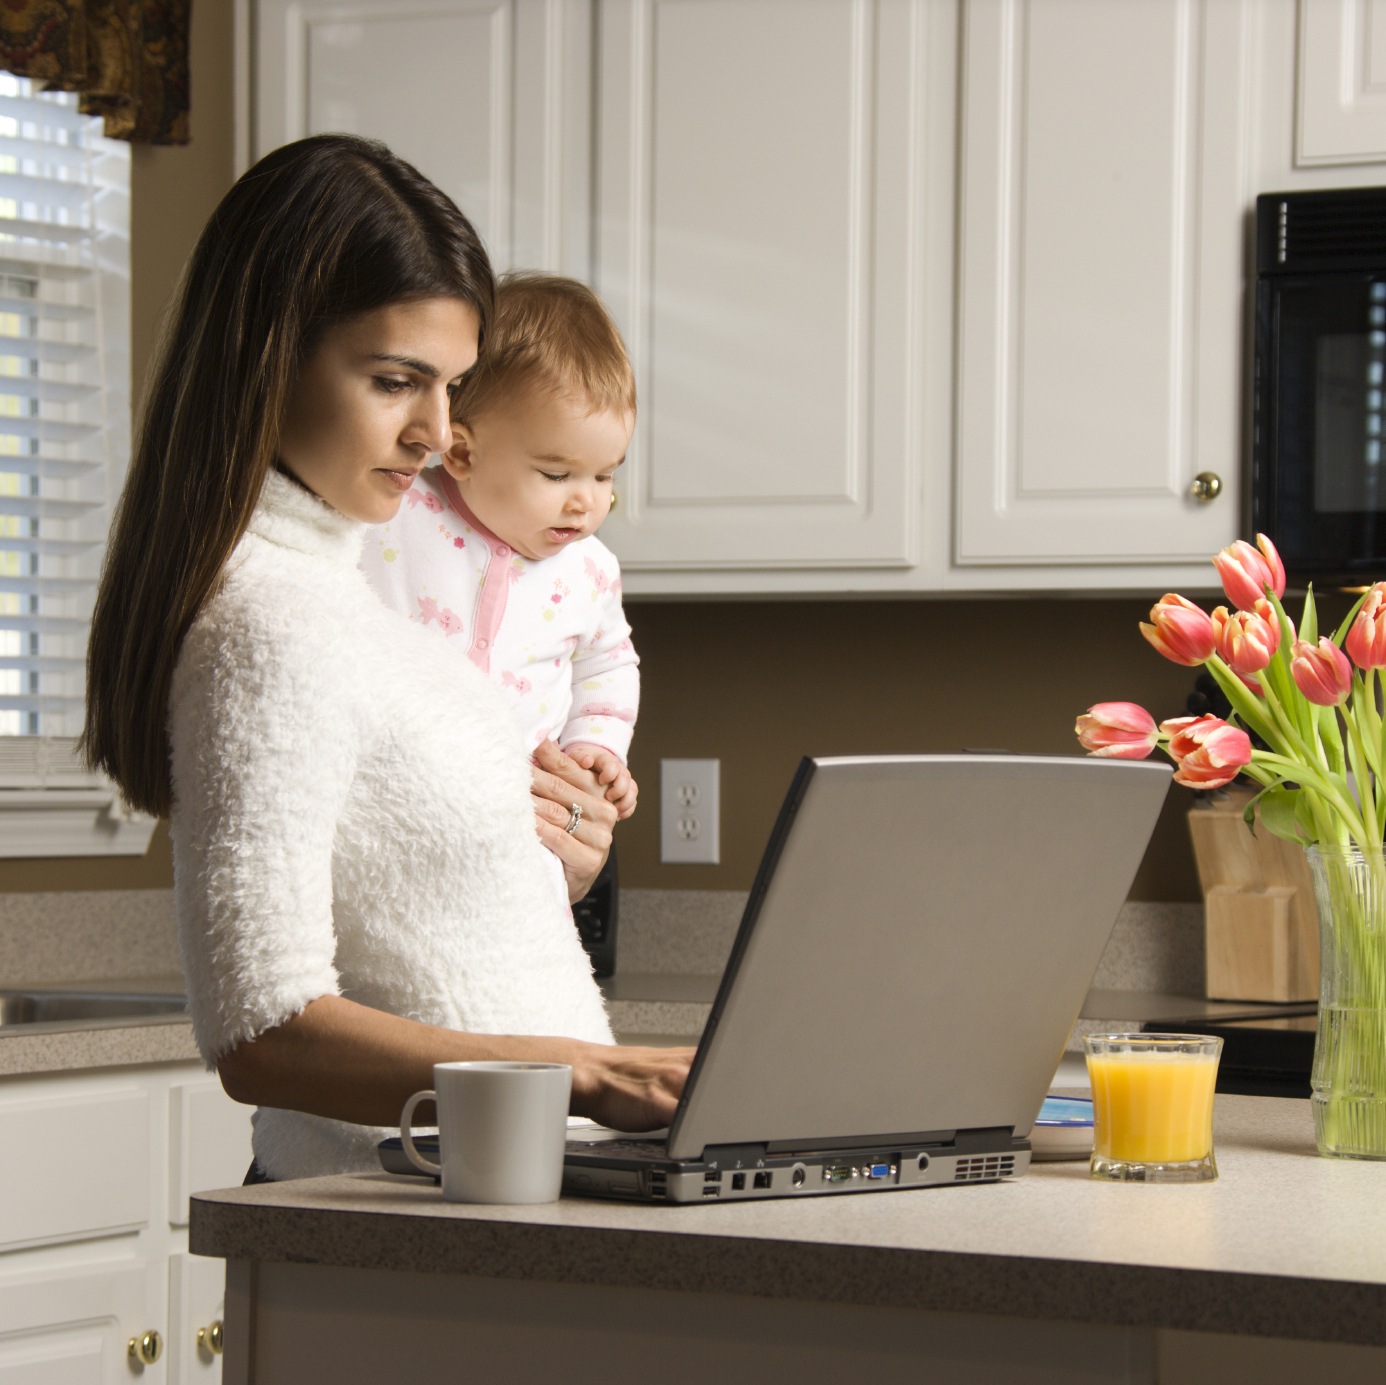 Work from home moms images